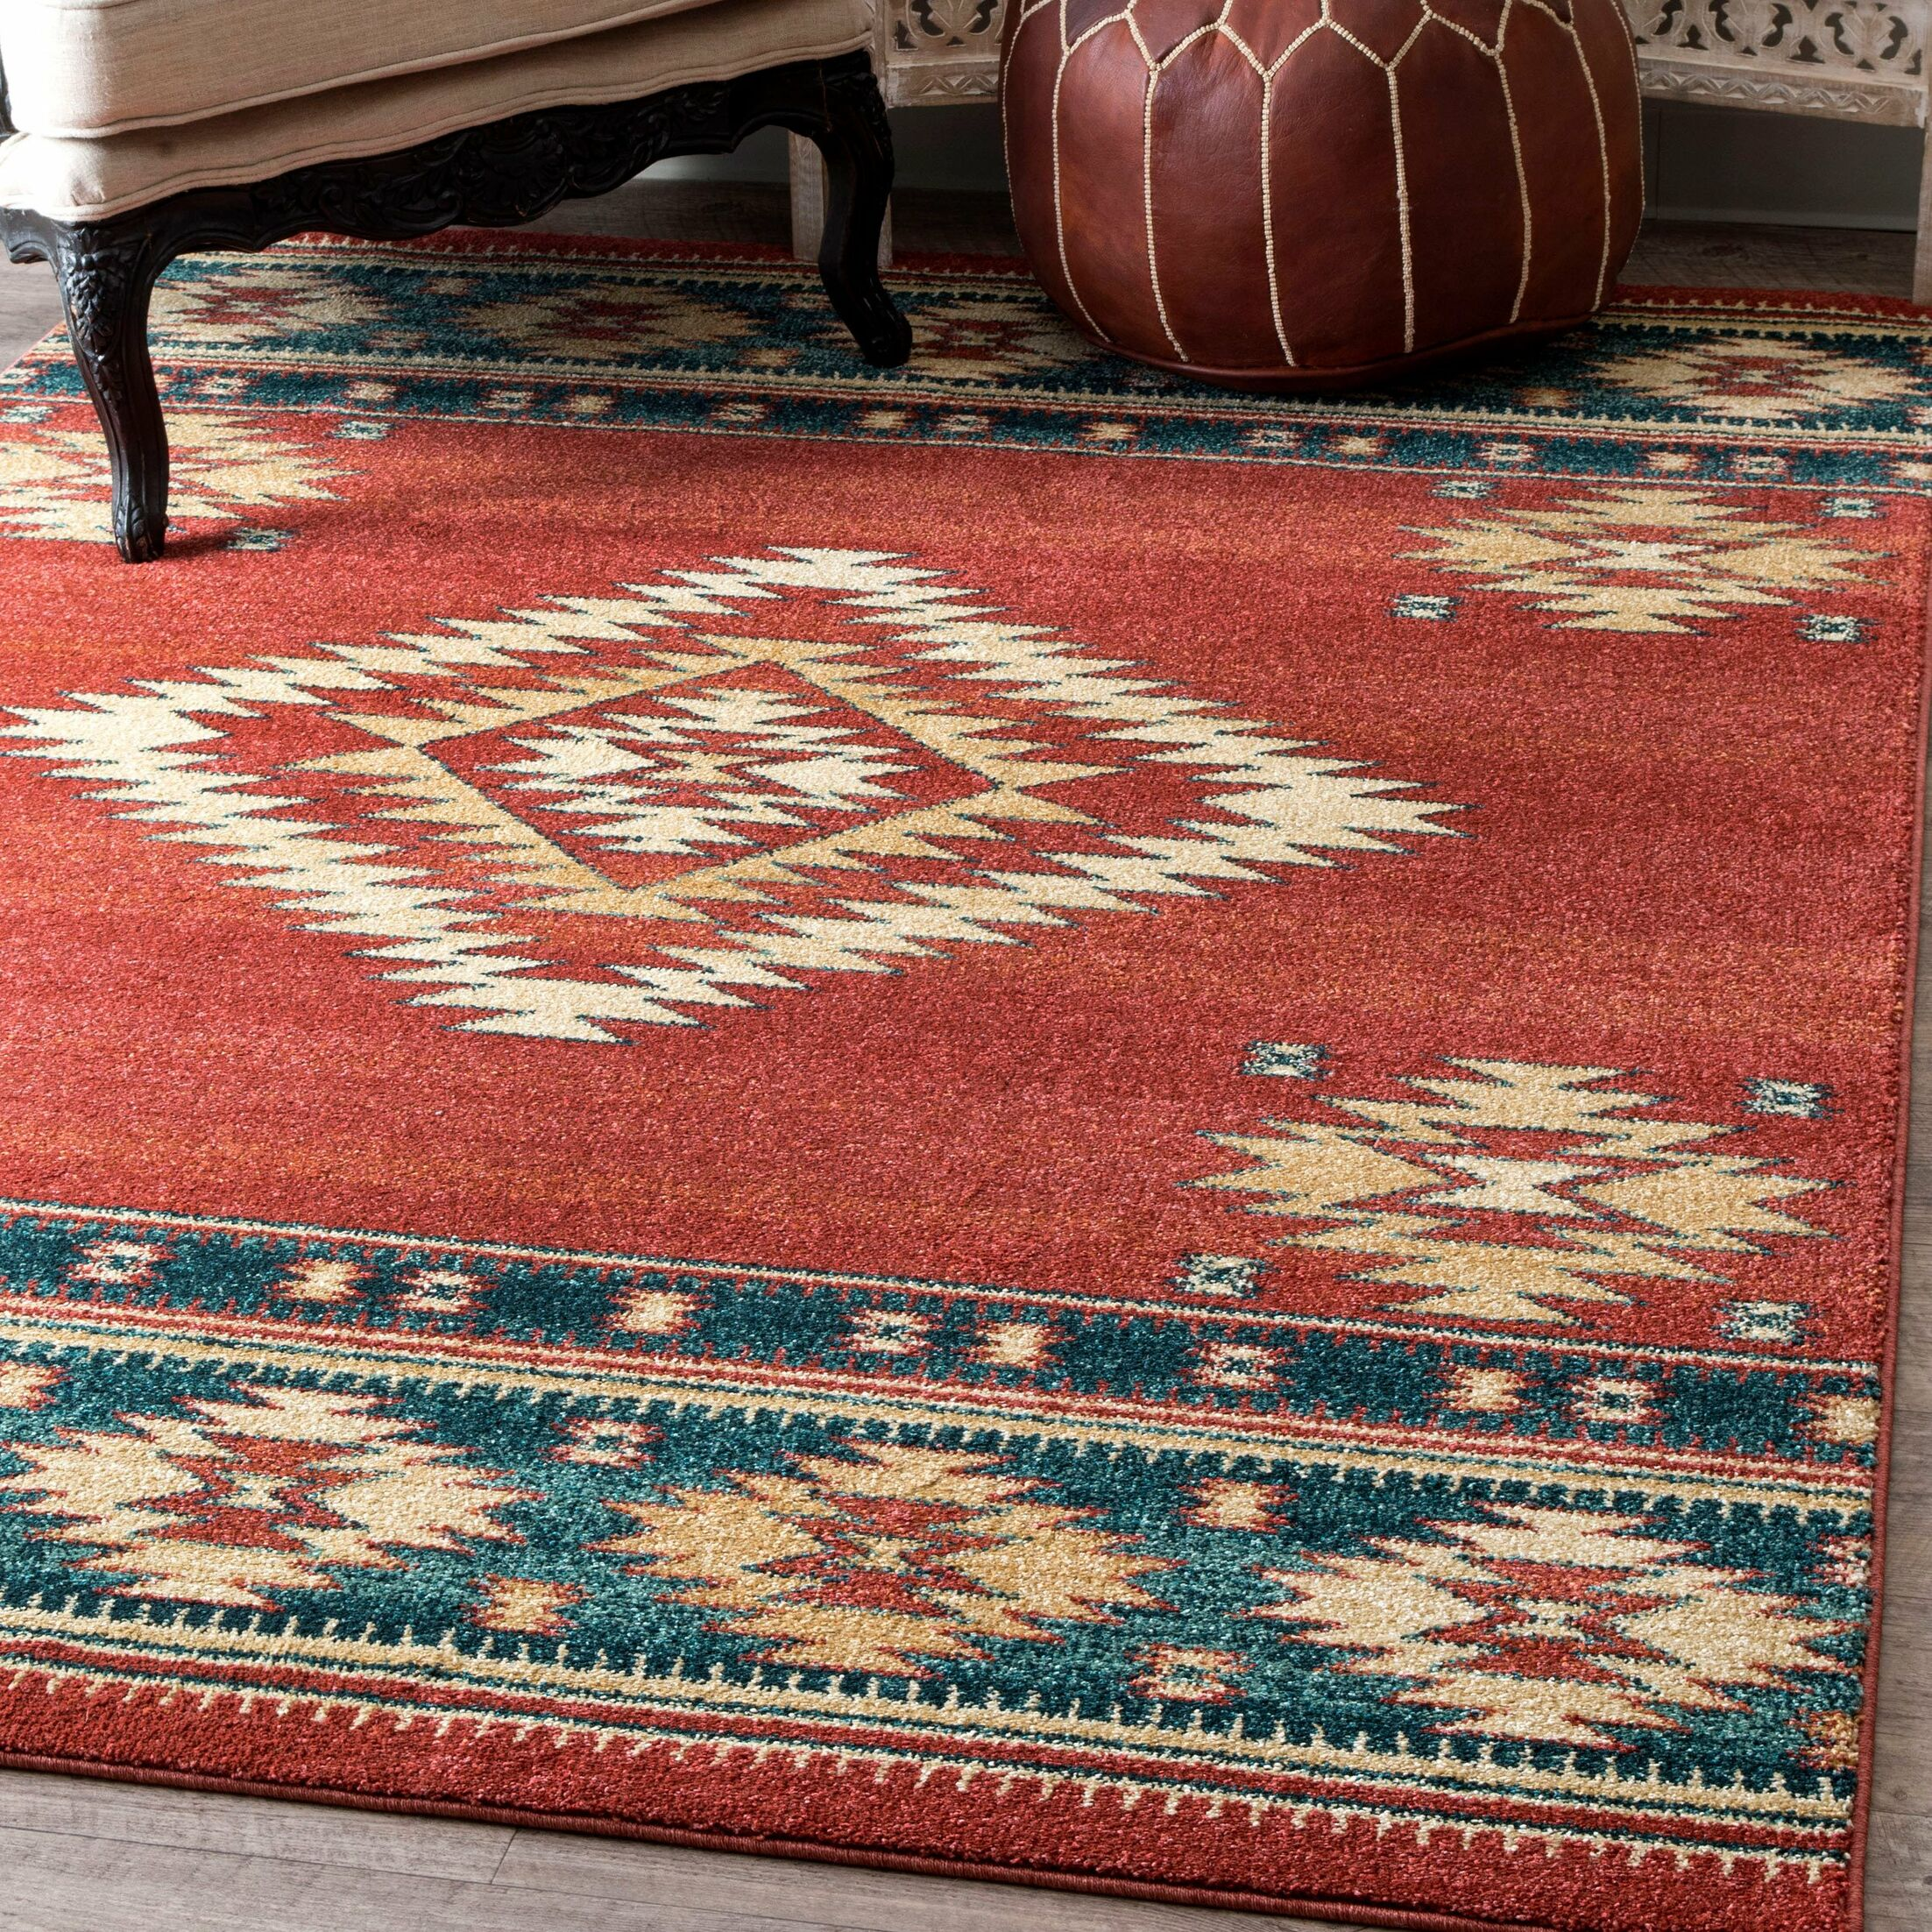 Lachine Red/Blue Area Rug Rug Size: Rectangle 4' x 6'